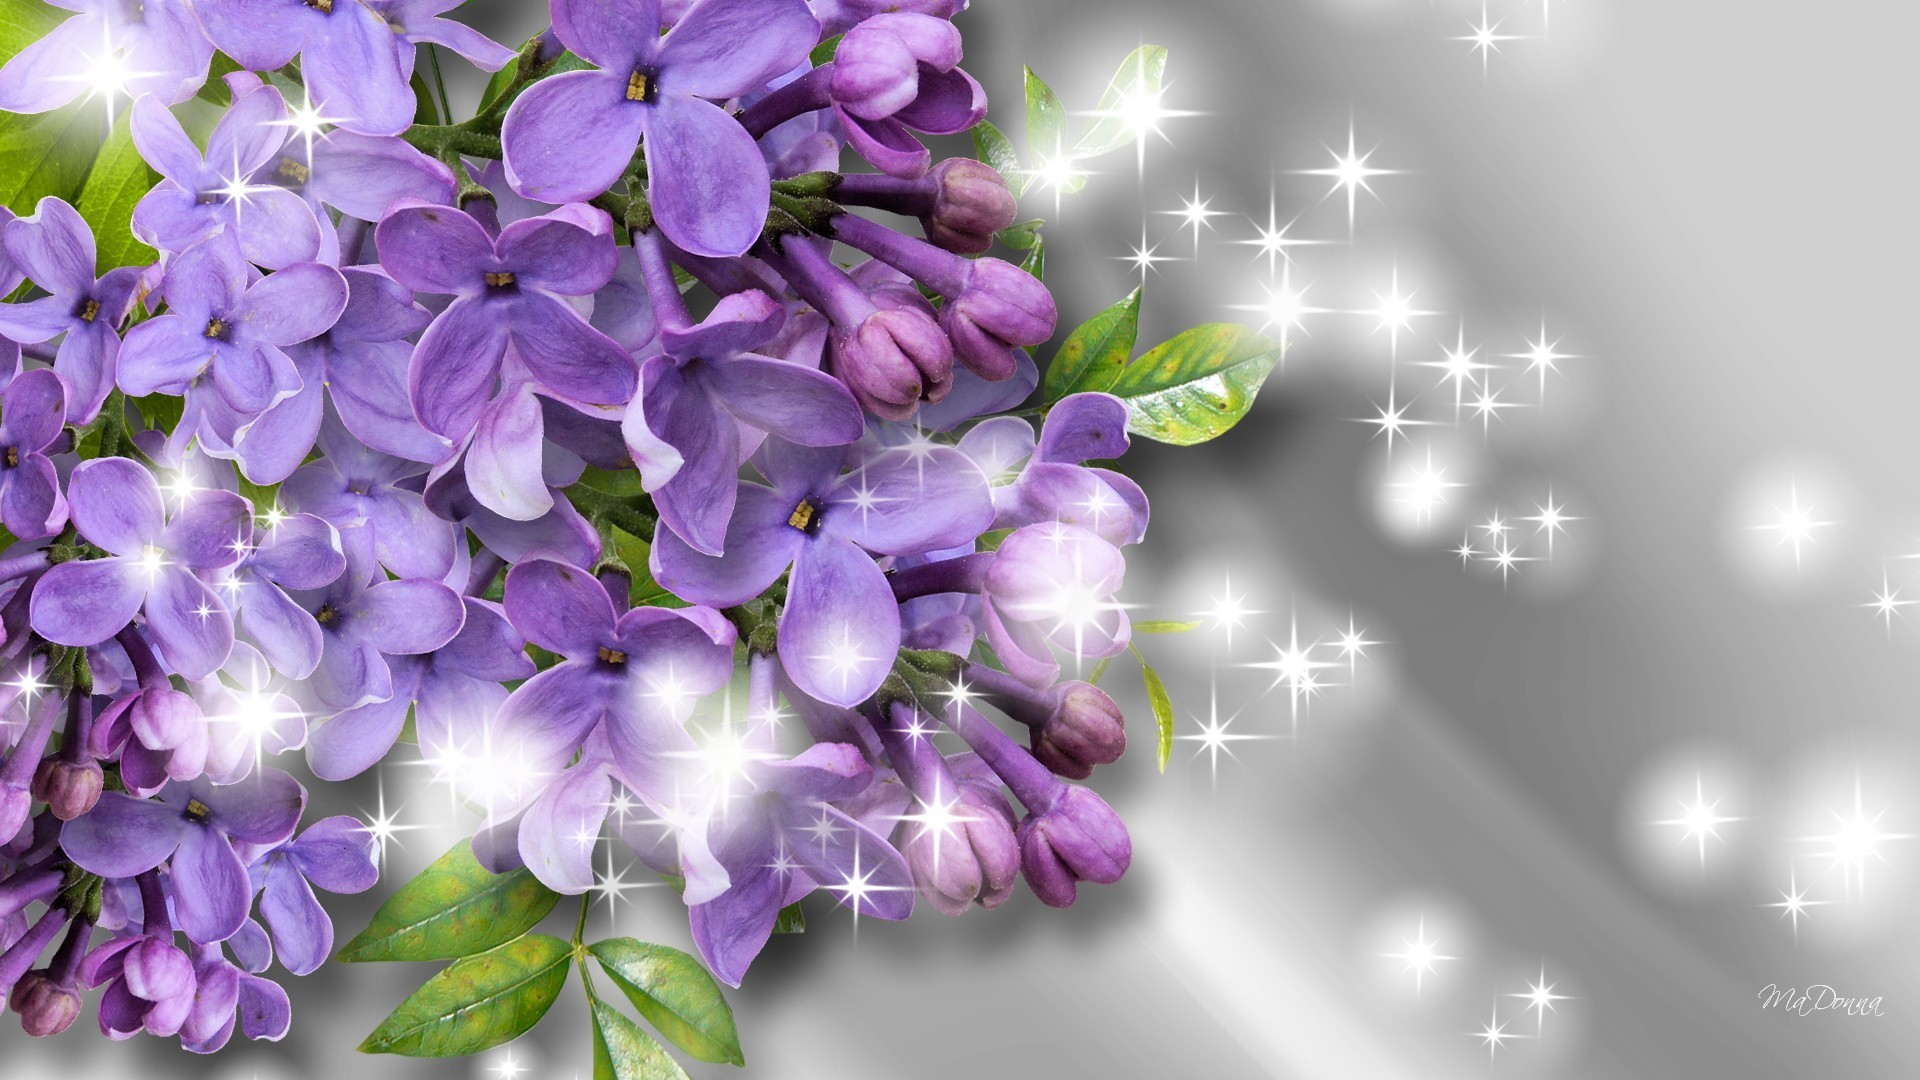 Fragrance Of The Lilacs Wallpaper